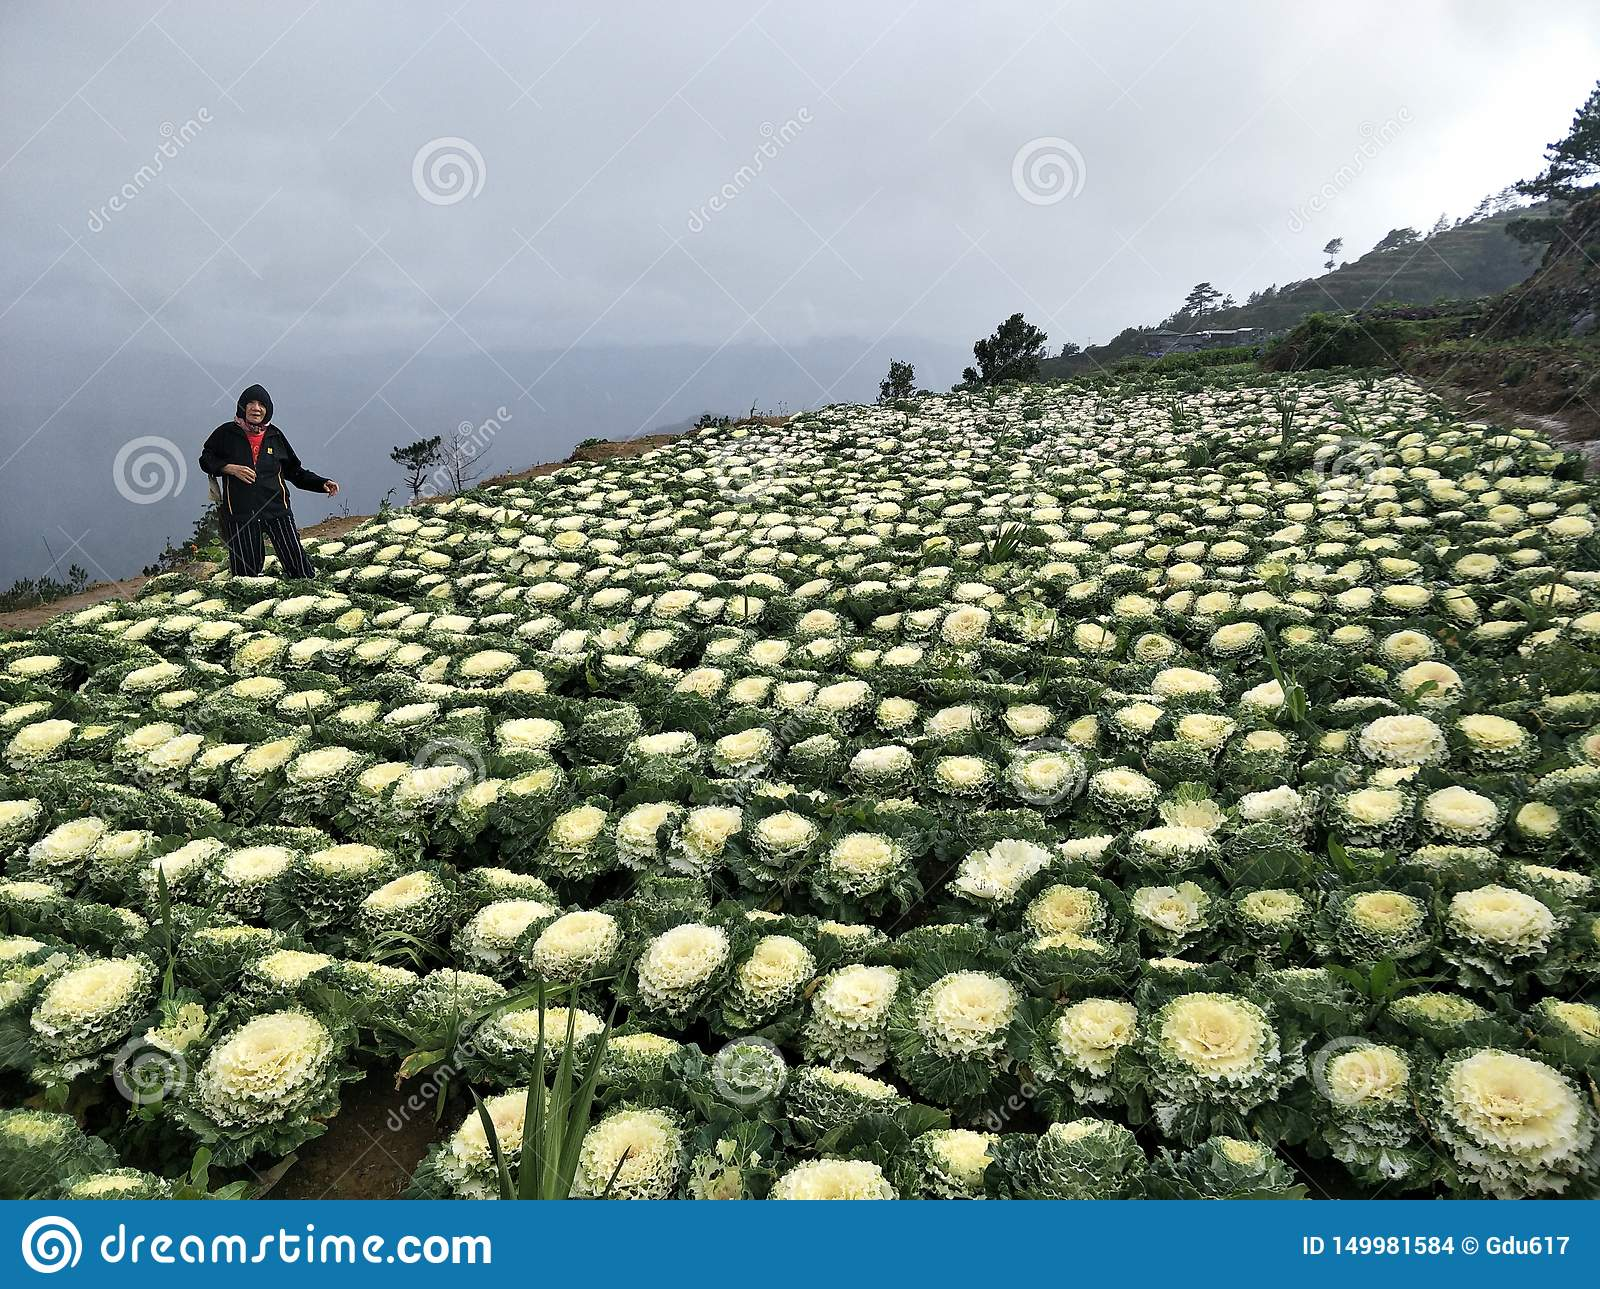 My Mother at Cauliflower Flowers from Benguet